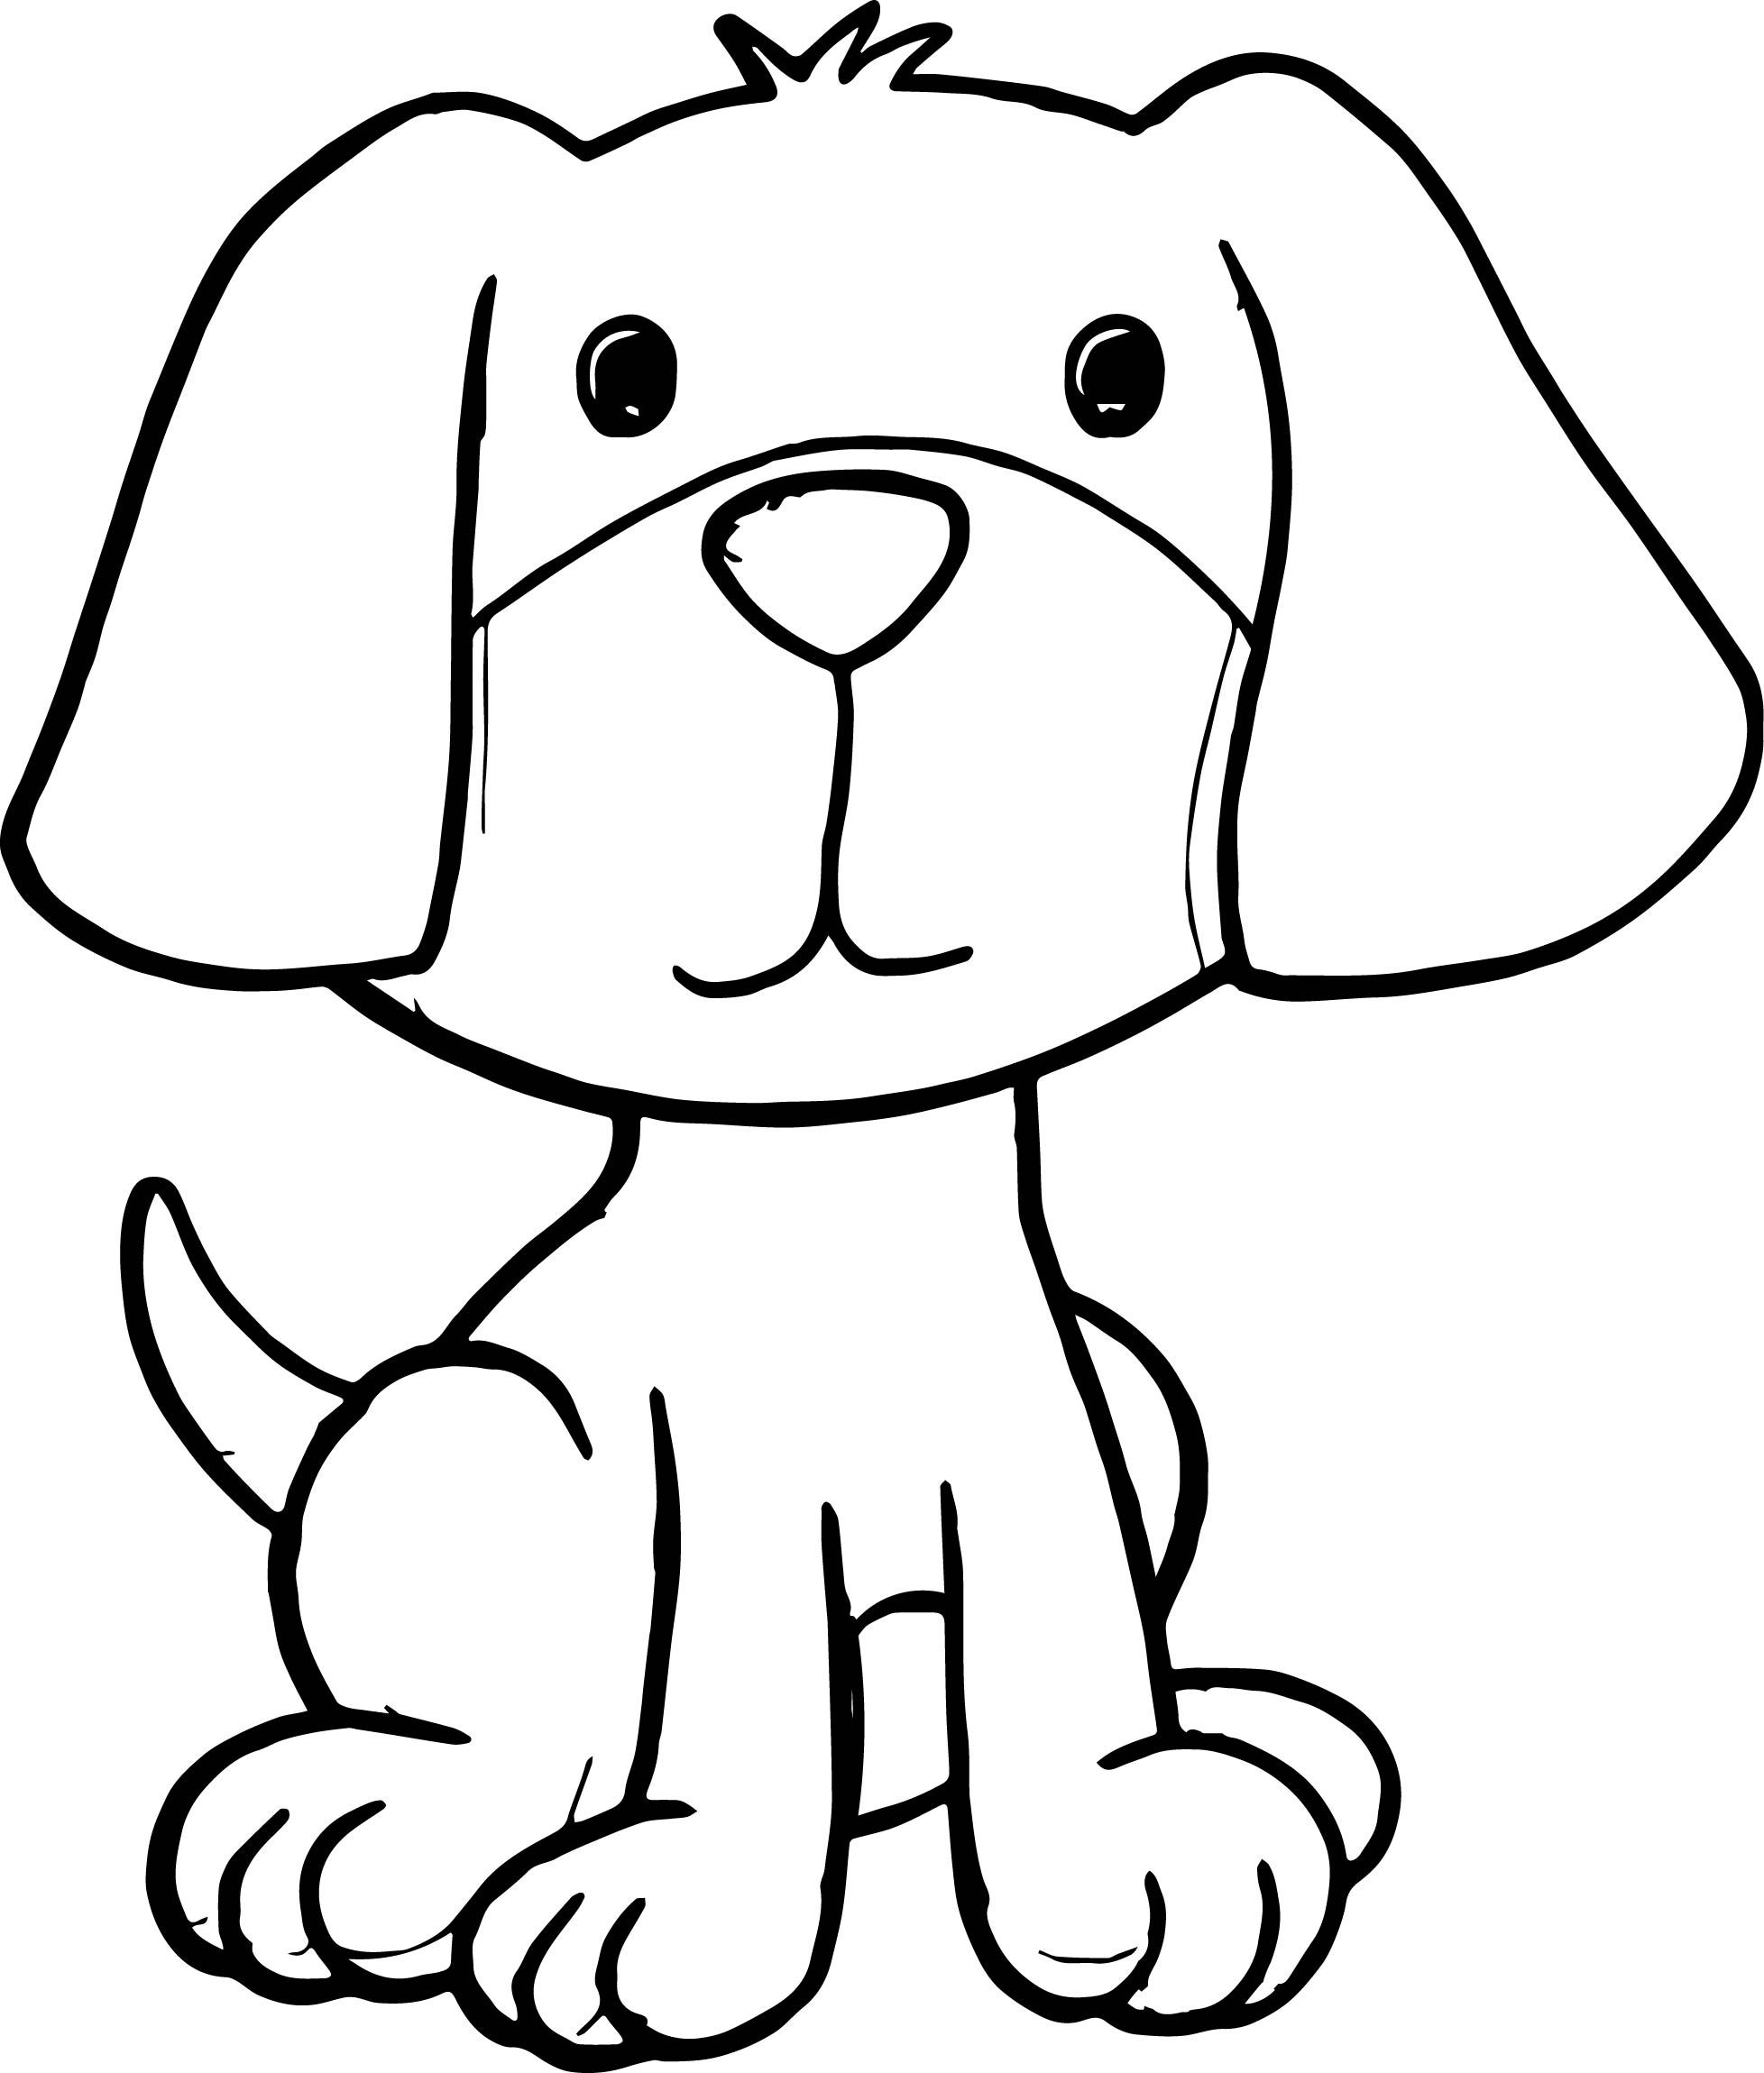 sitting dog coloring pages cartoon dog coloring page in 2020 puppy cartoon puppy pages coloring sitting dog